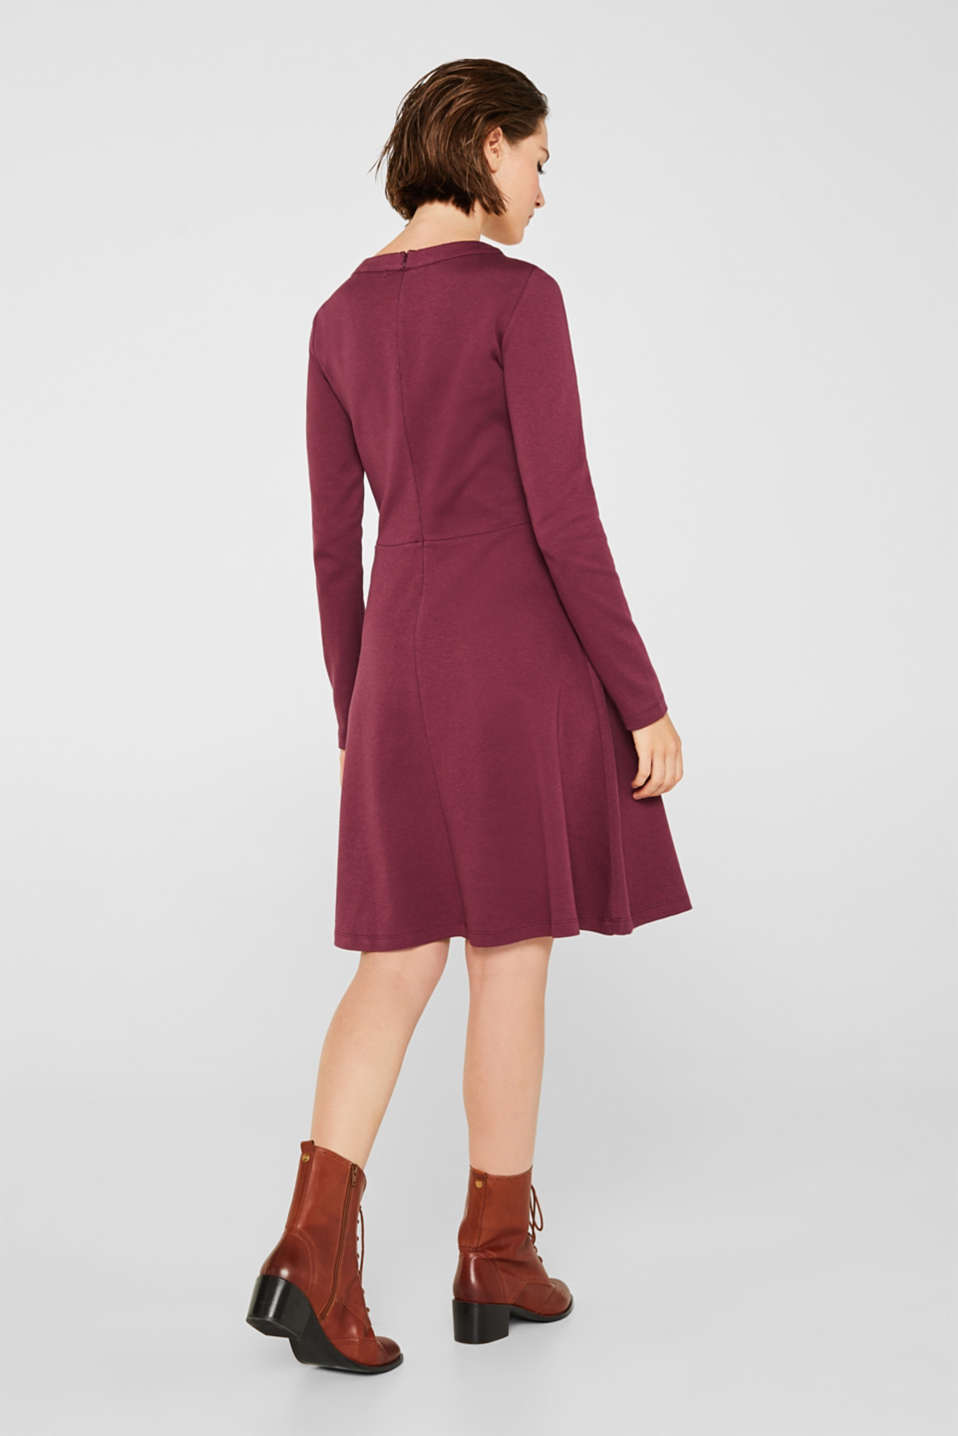 Dresses knitted, BORDEAUX RED, detail image number 2